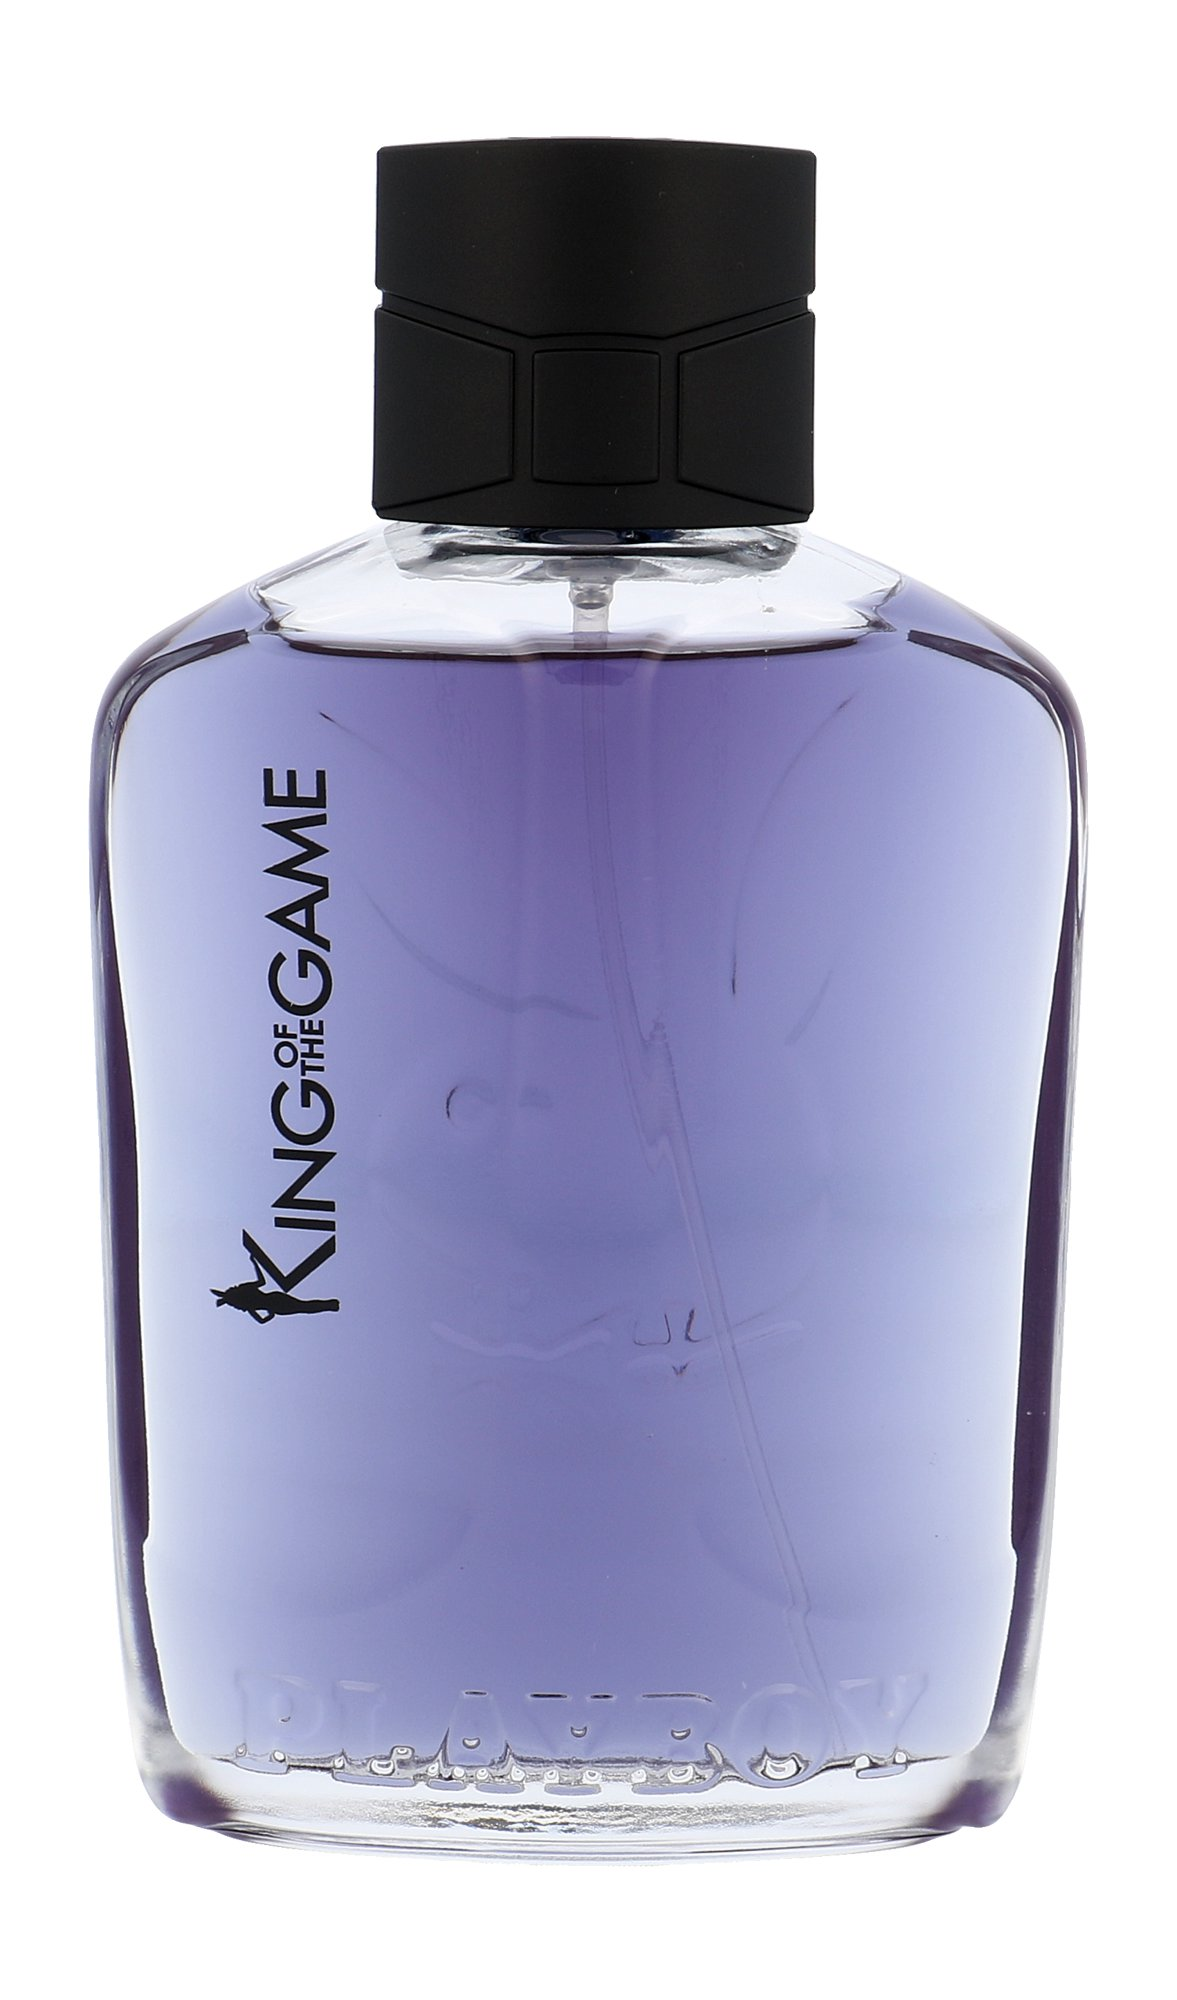 Playboy King of the Game For Him, Toaletná voda 100ml